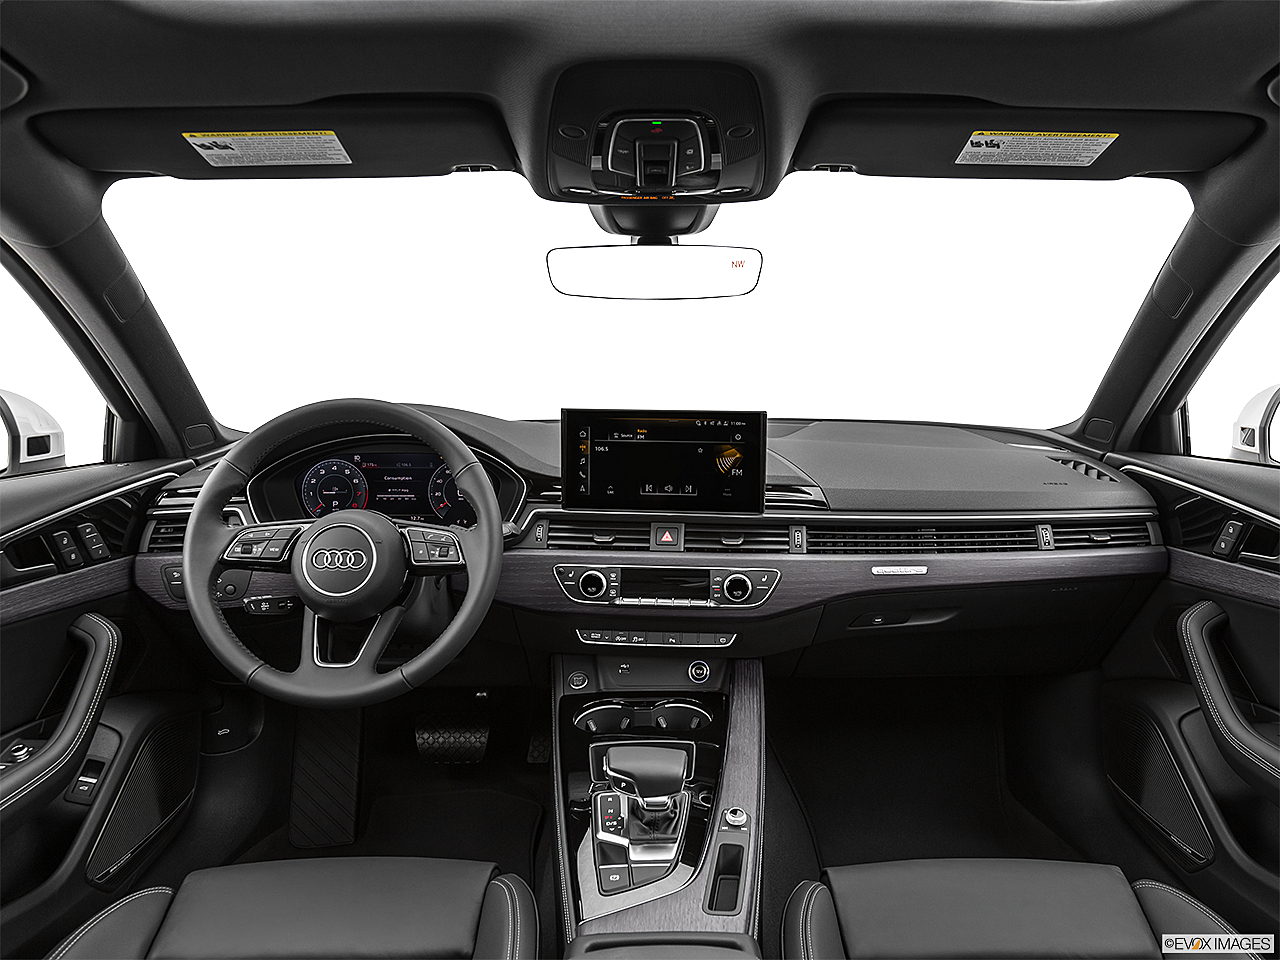 2020 Audi A4 Premium Plus 45 TFSI, centered wide dash shot